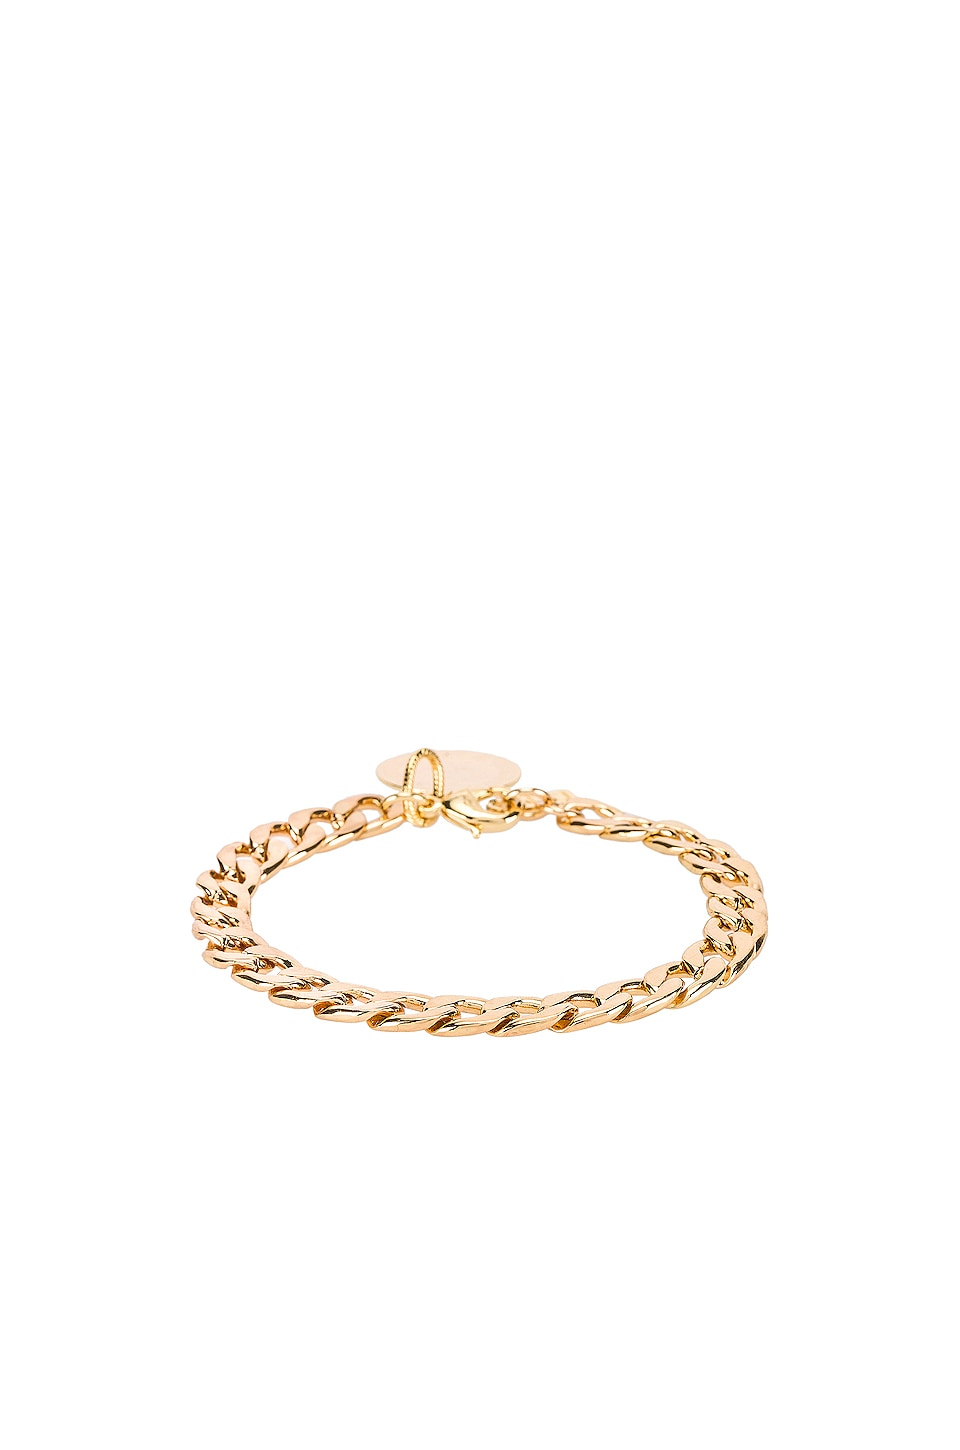 Natalie B Jewelry BRAZALETE D'OR CHAIN